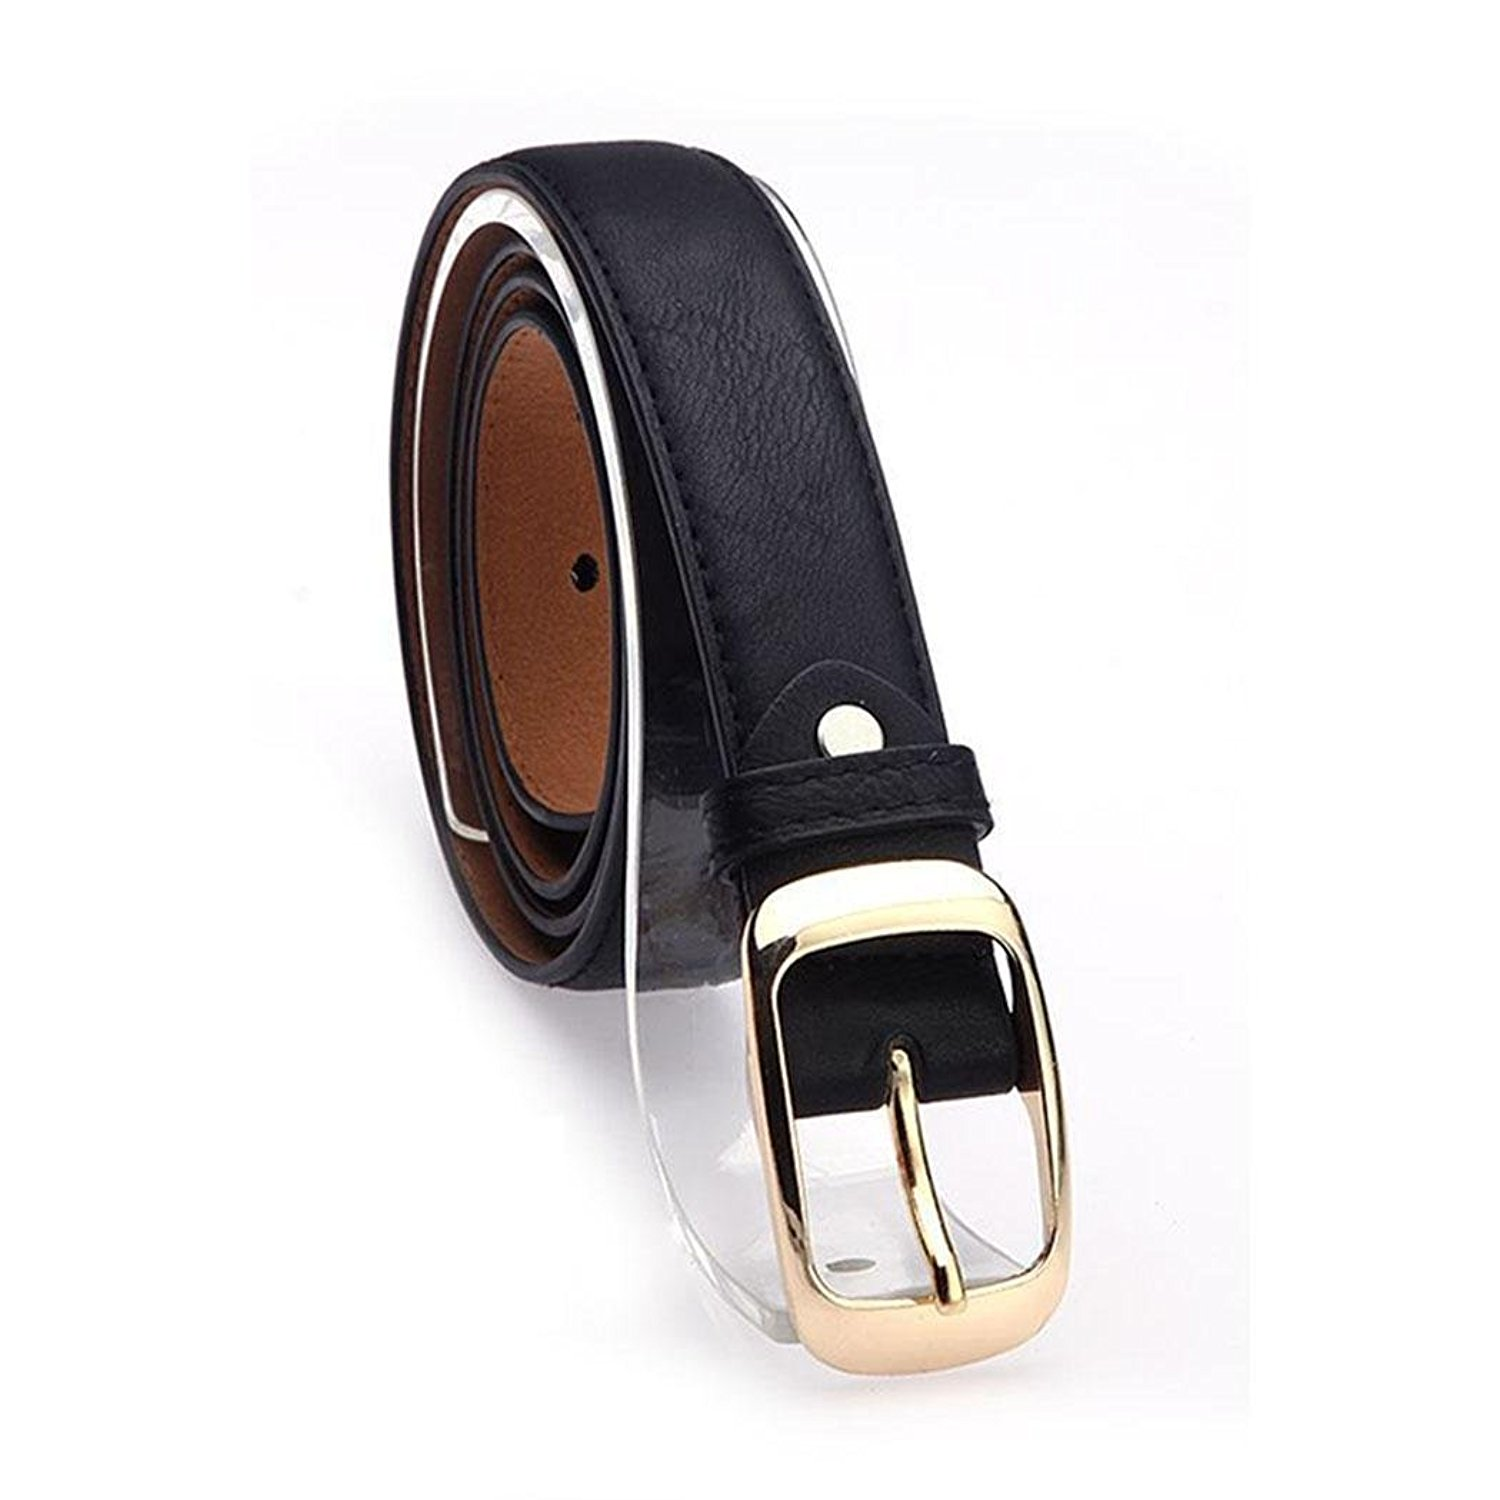 eddd21bff Get Quotations · FANEO adjustable solid color women leopard leather belt  womens fashion black leather belt with belt buckles